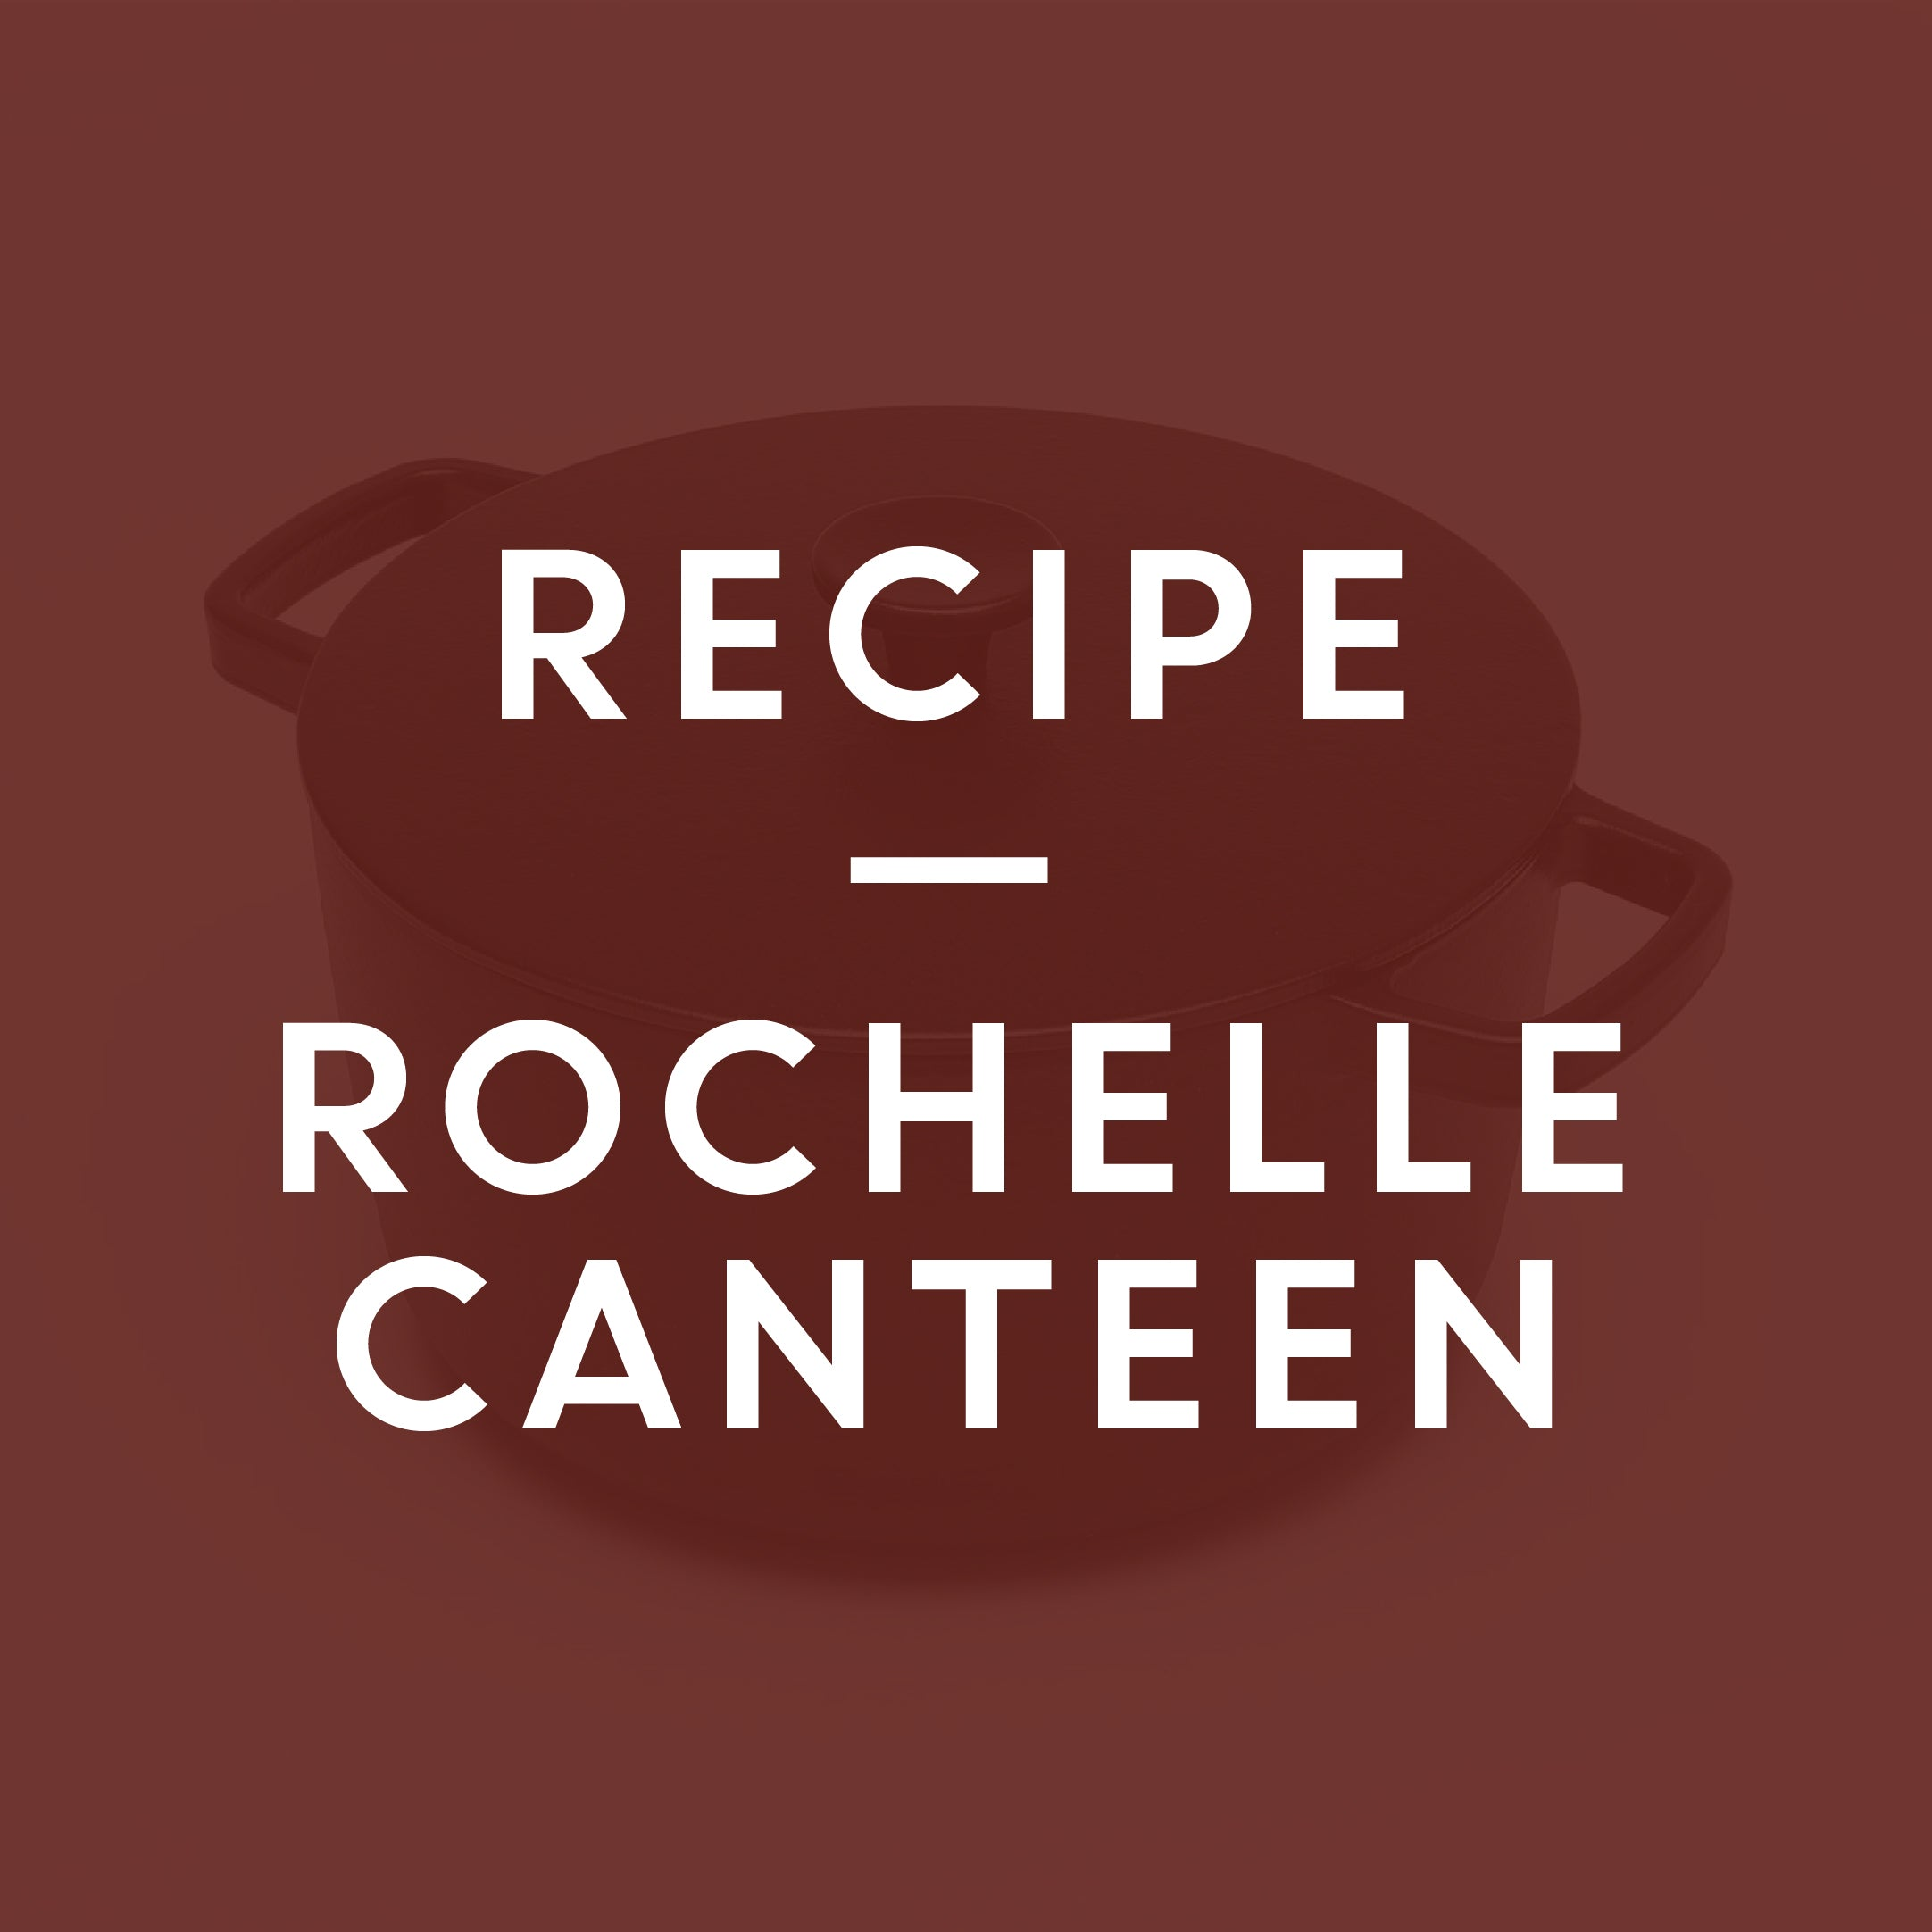 //cdn.shopify.com/s/files/1/0859/6096/files/CR_WEB_RecipeImage_04Rochelle.jpg?8396293260069940417